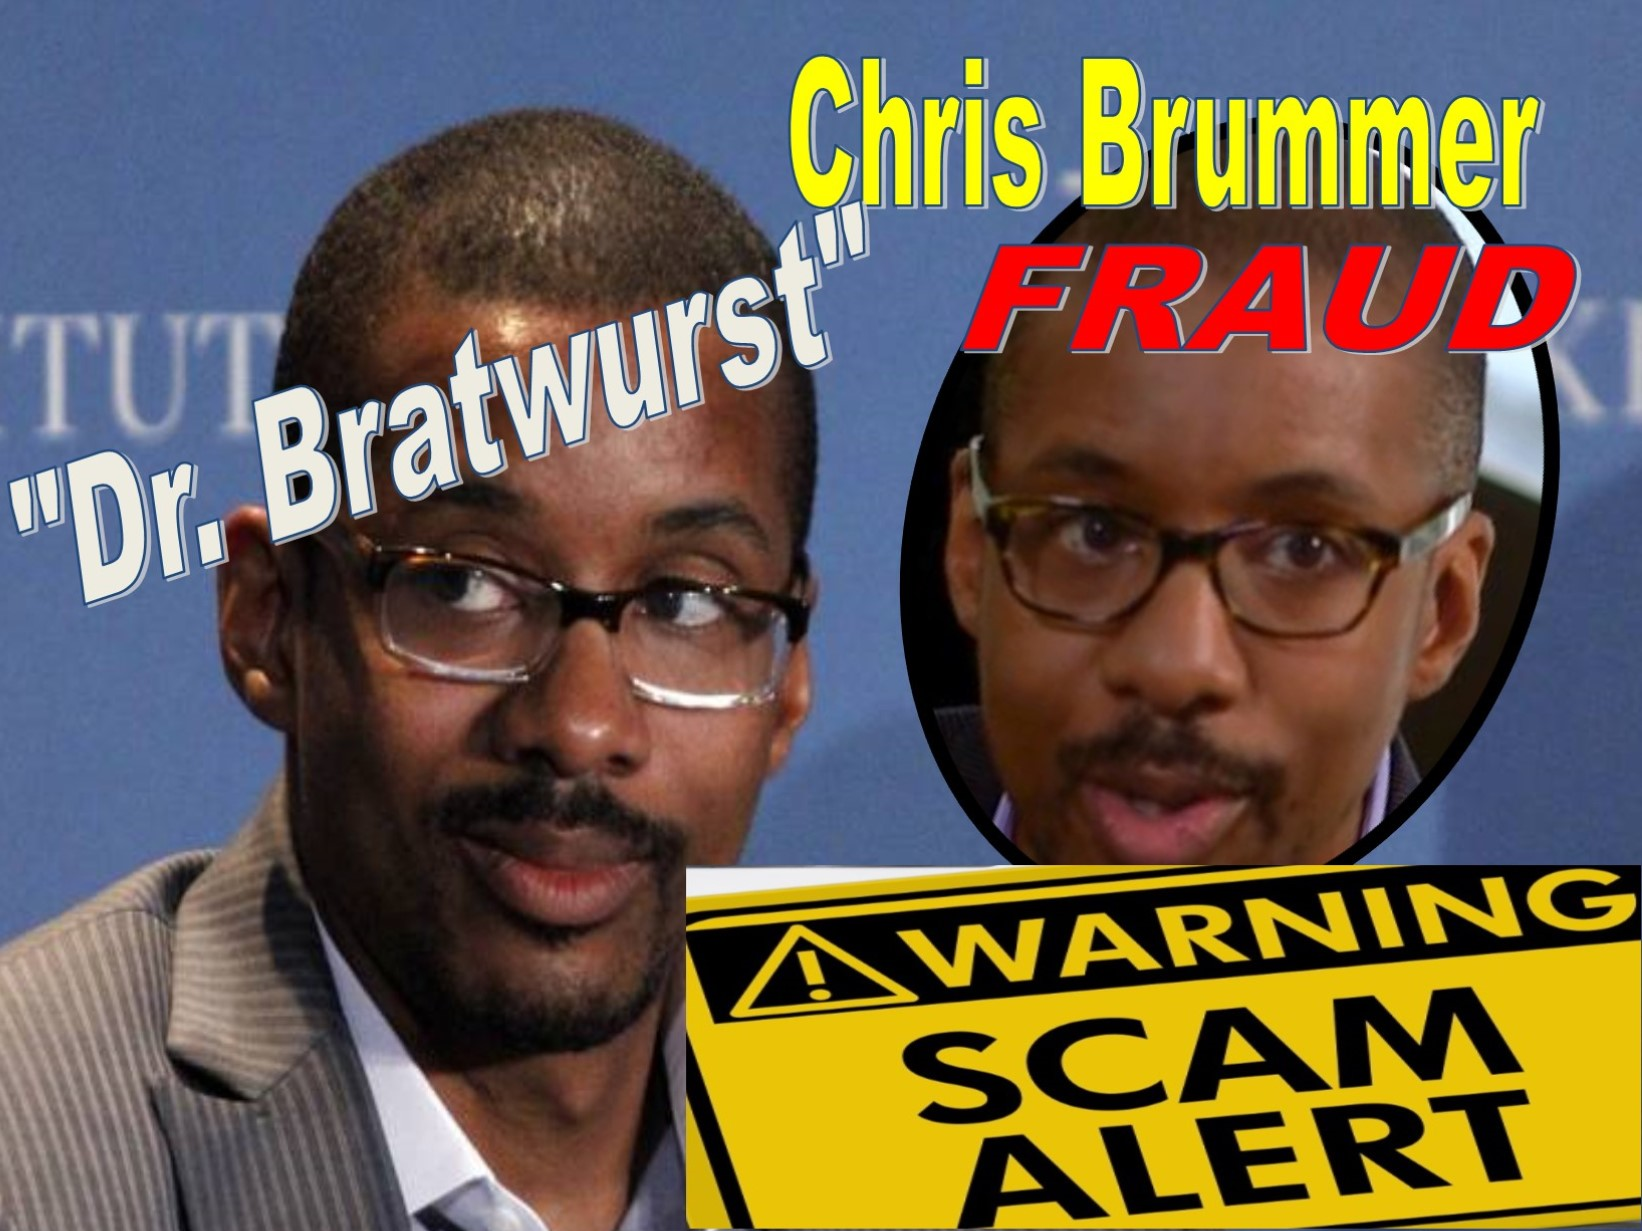 CHRIS BRUMMER, CONGRESS, WITNESS, CRYPTO, TESTIMONY, GEORGETOWN LAW CENTER, PROFESSOR, FRAUD, RACHEL LOKO, FINRA NAC